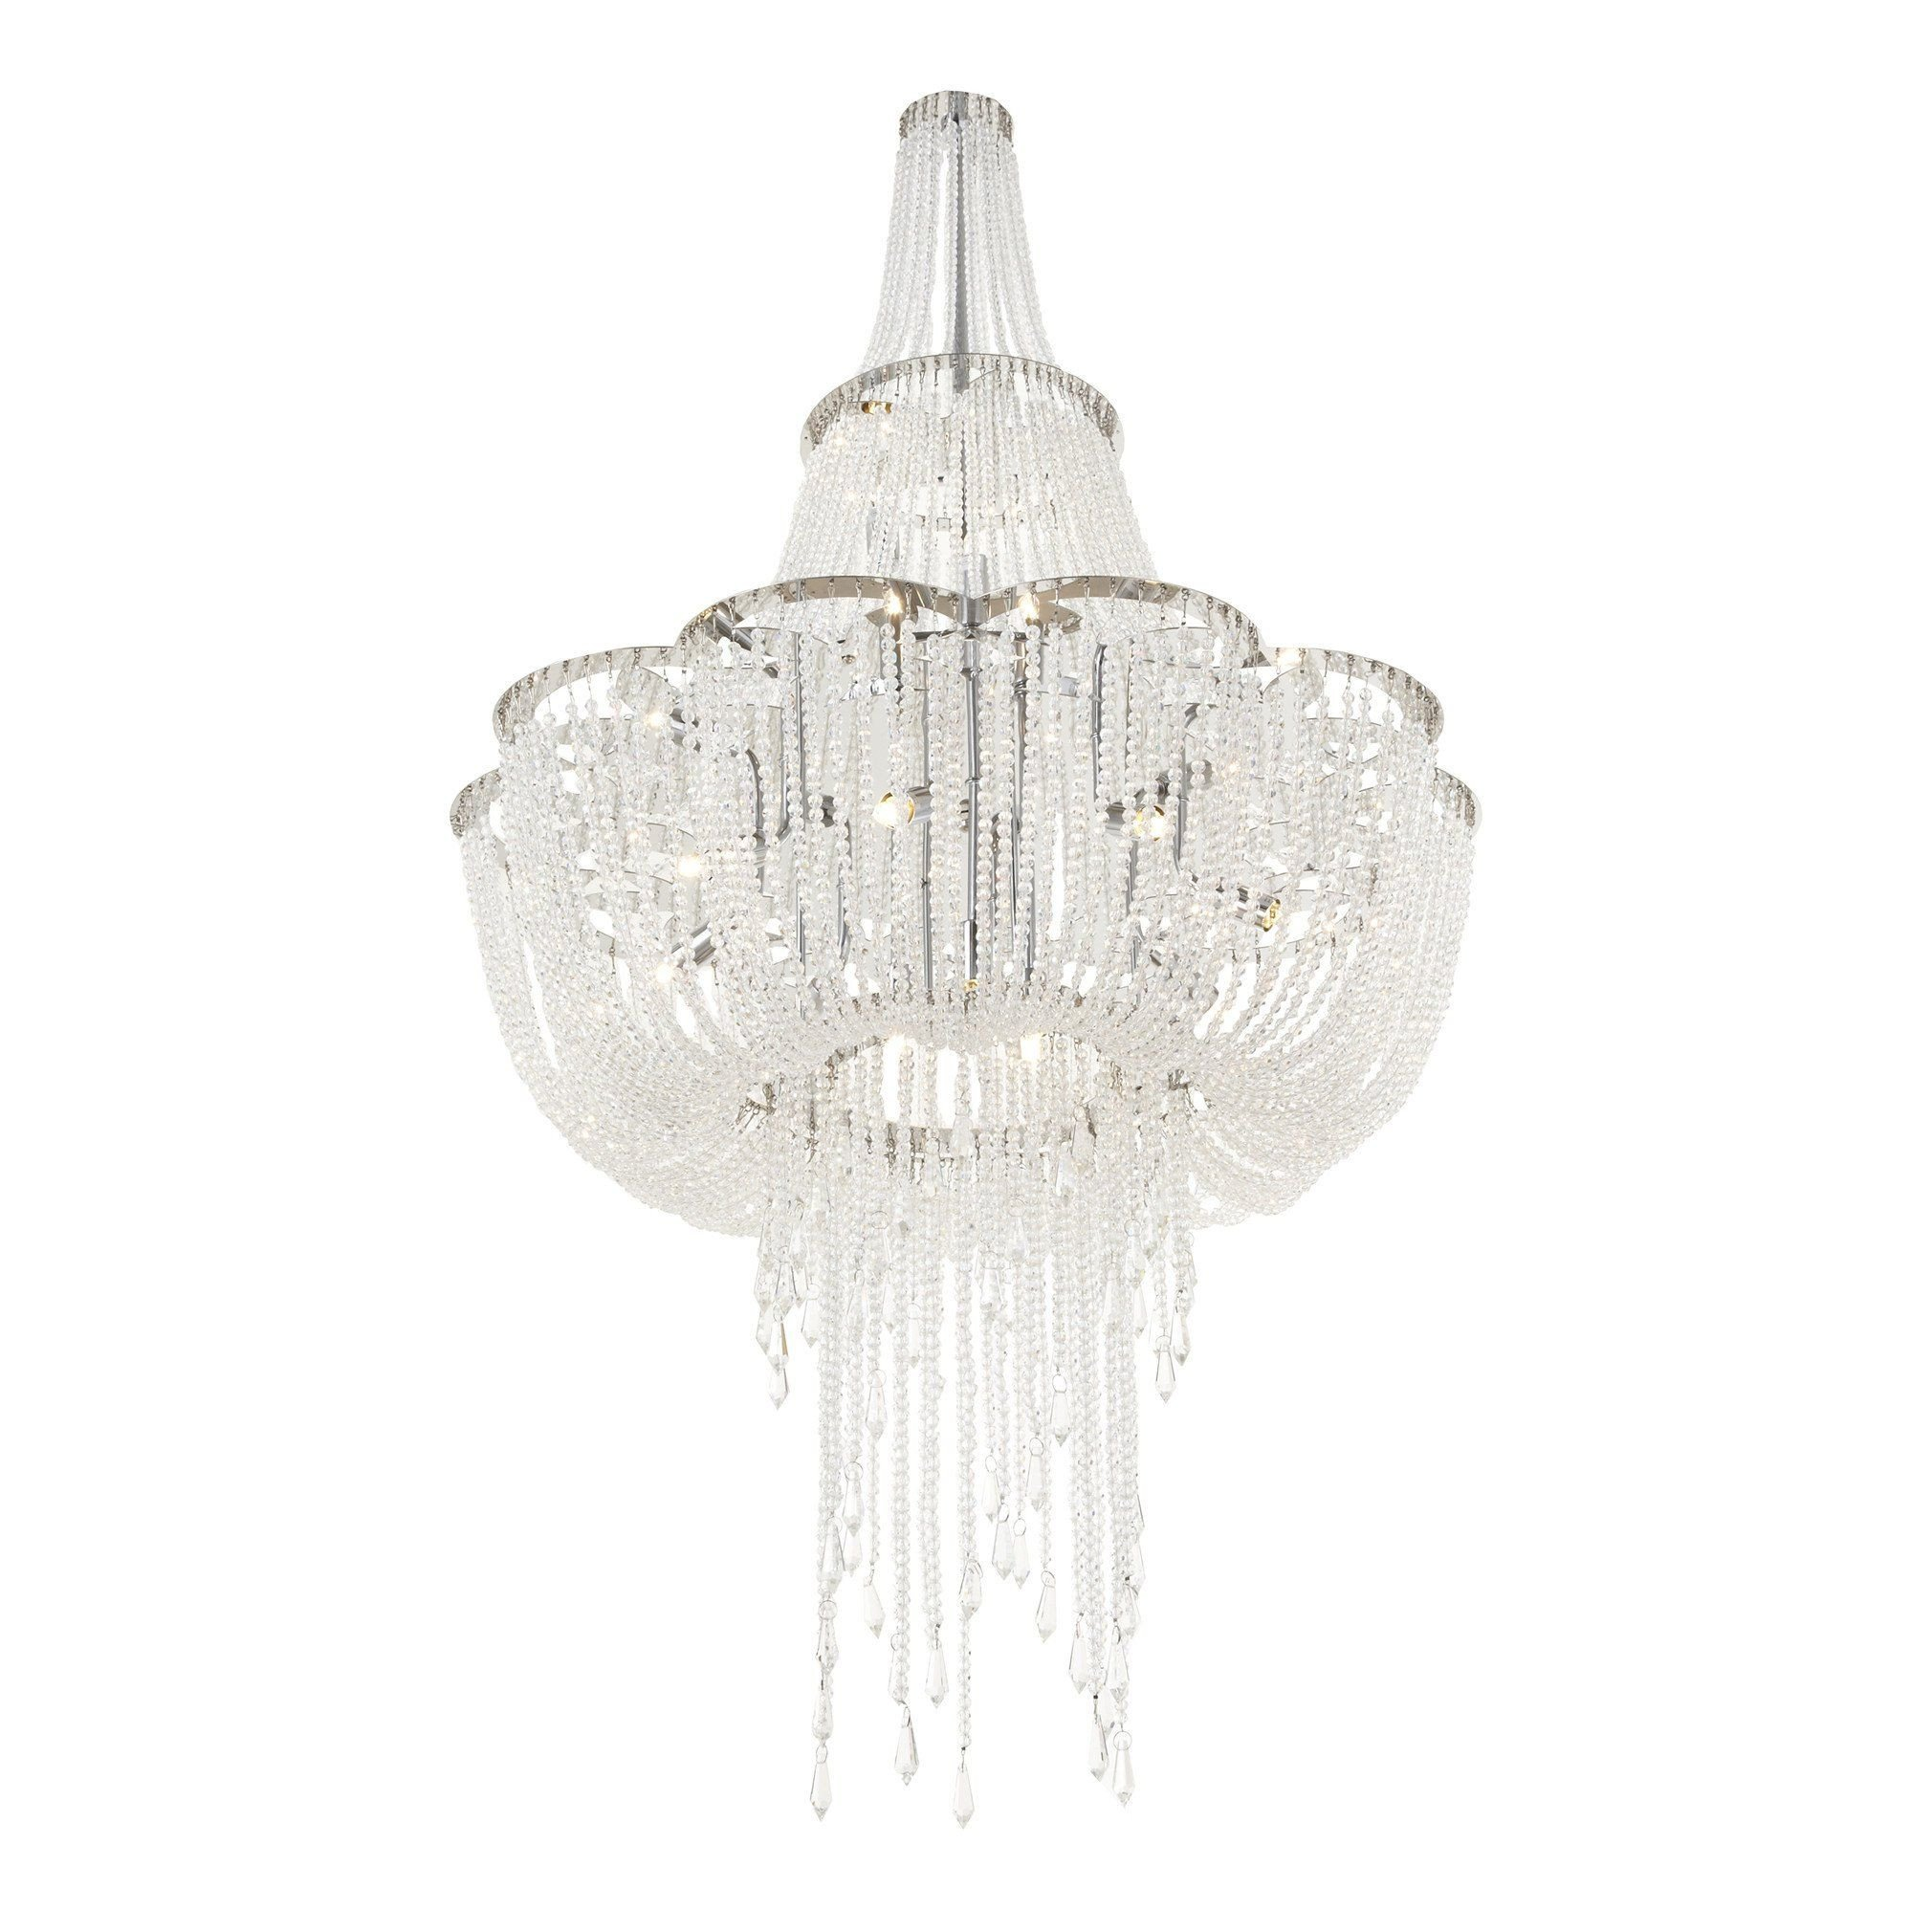 Twinkling Light for Bedroom Inspirational Rv astley Monaco Crystal Chandelier